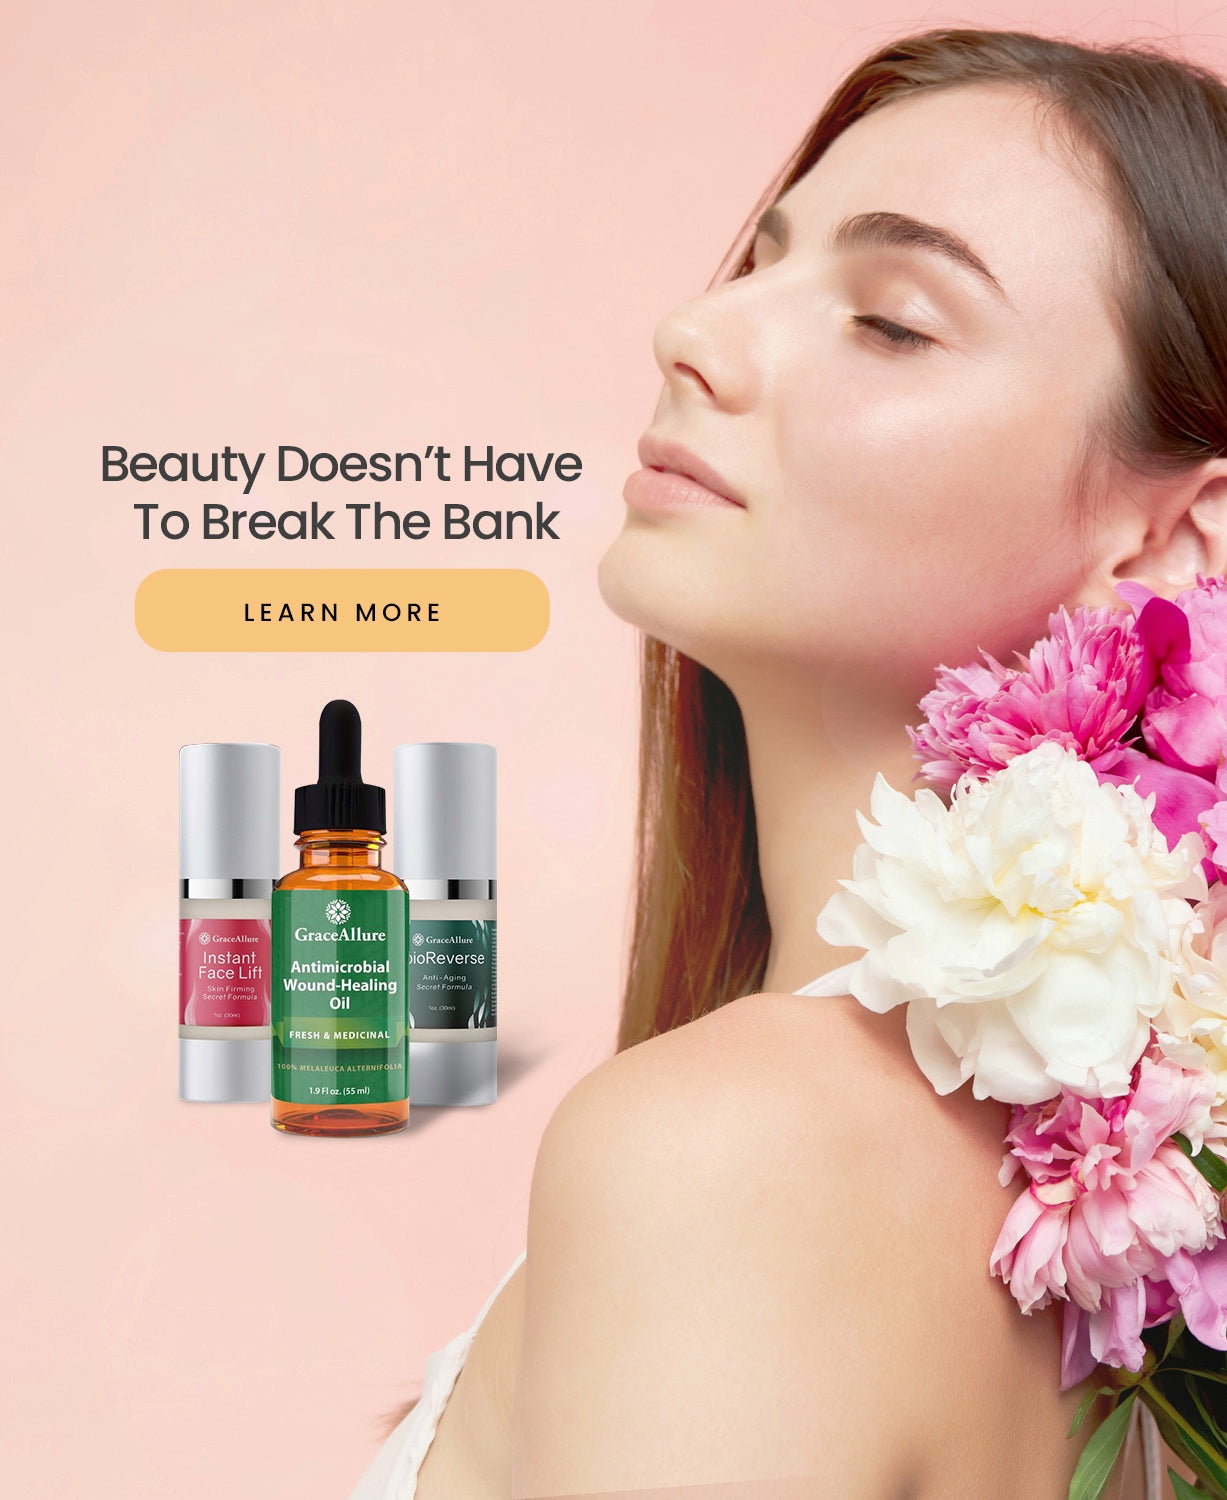 Beauty Doesnt Have To Break The Bank